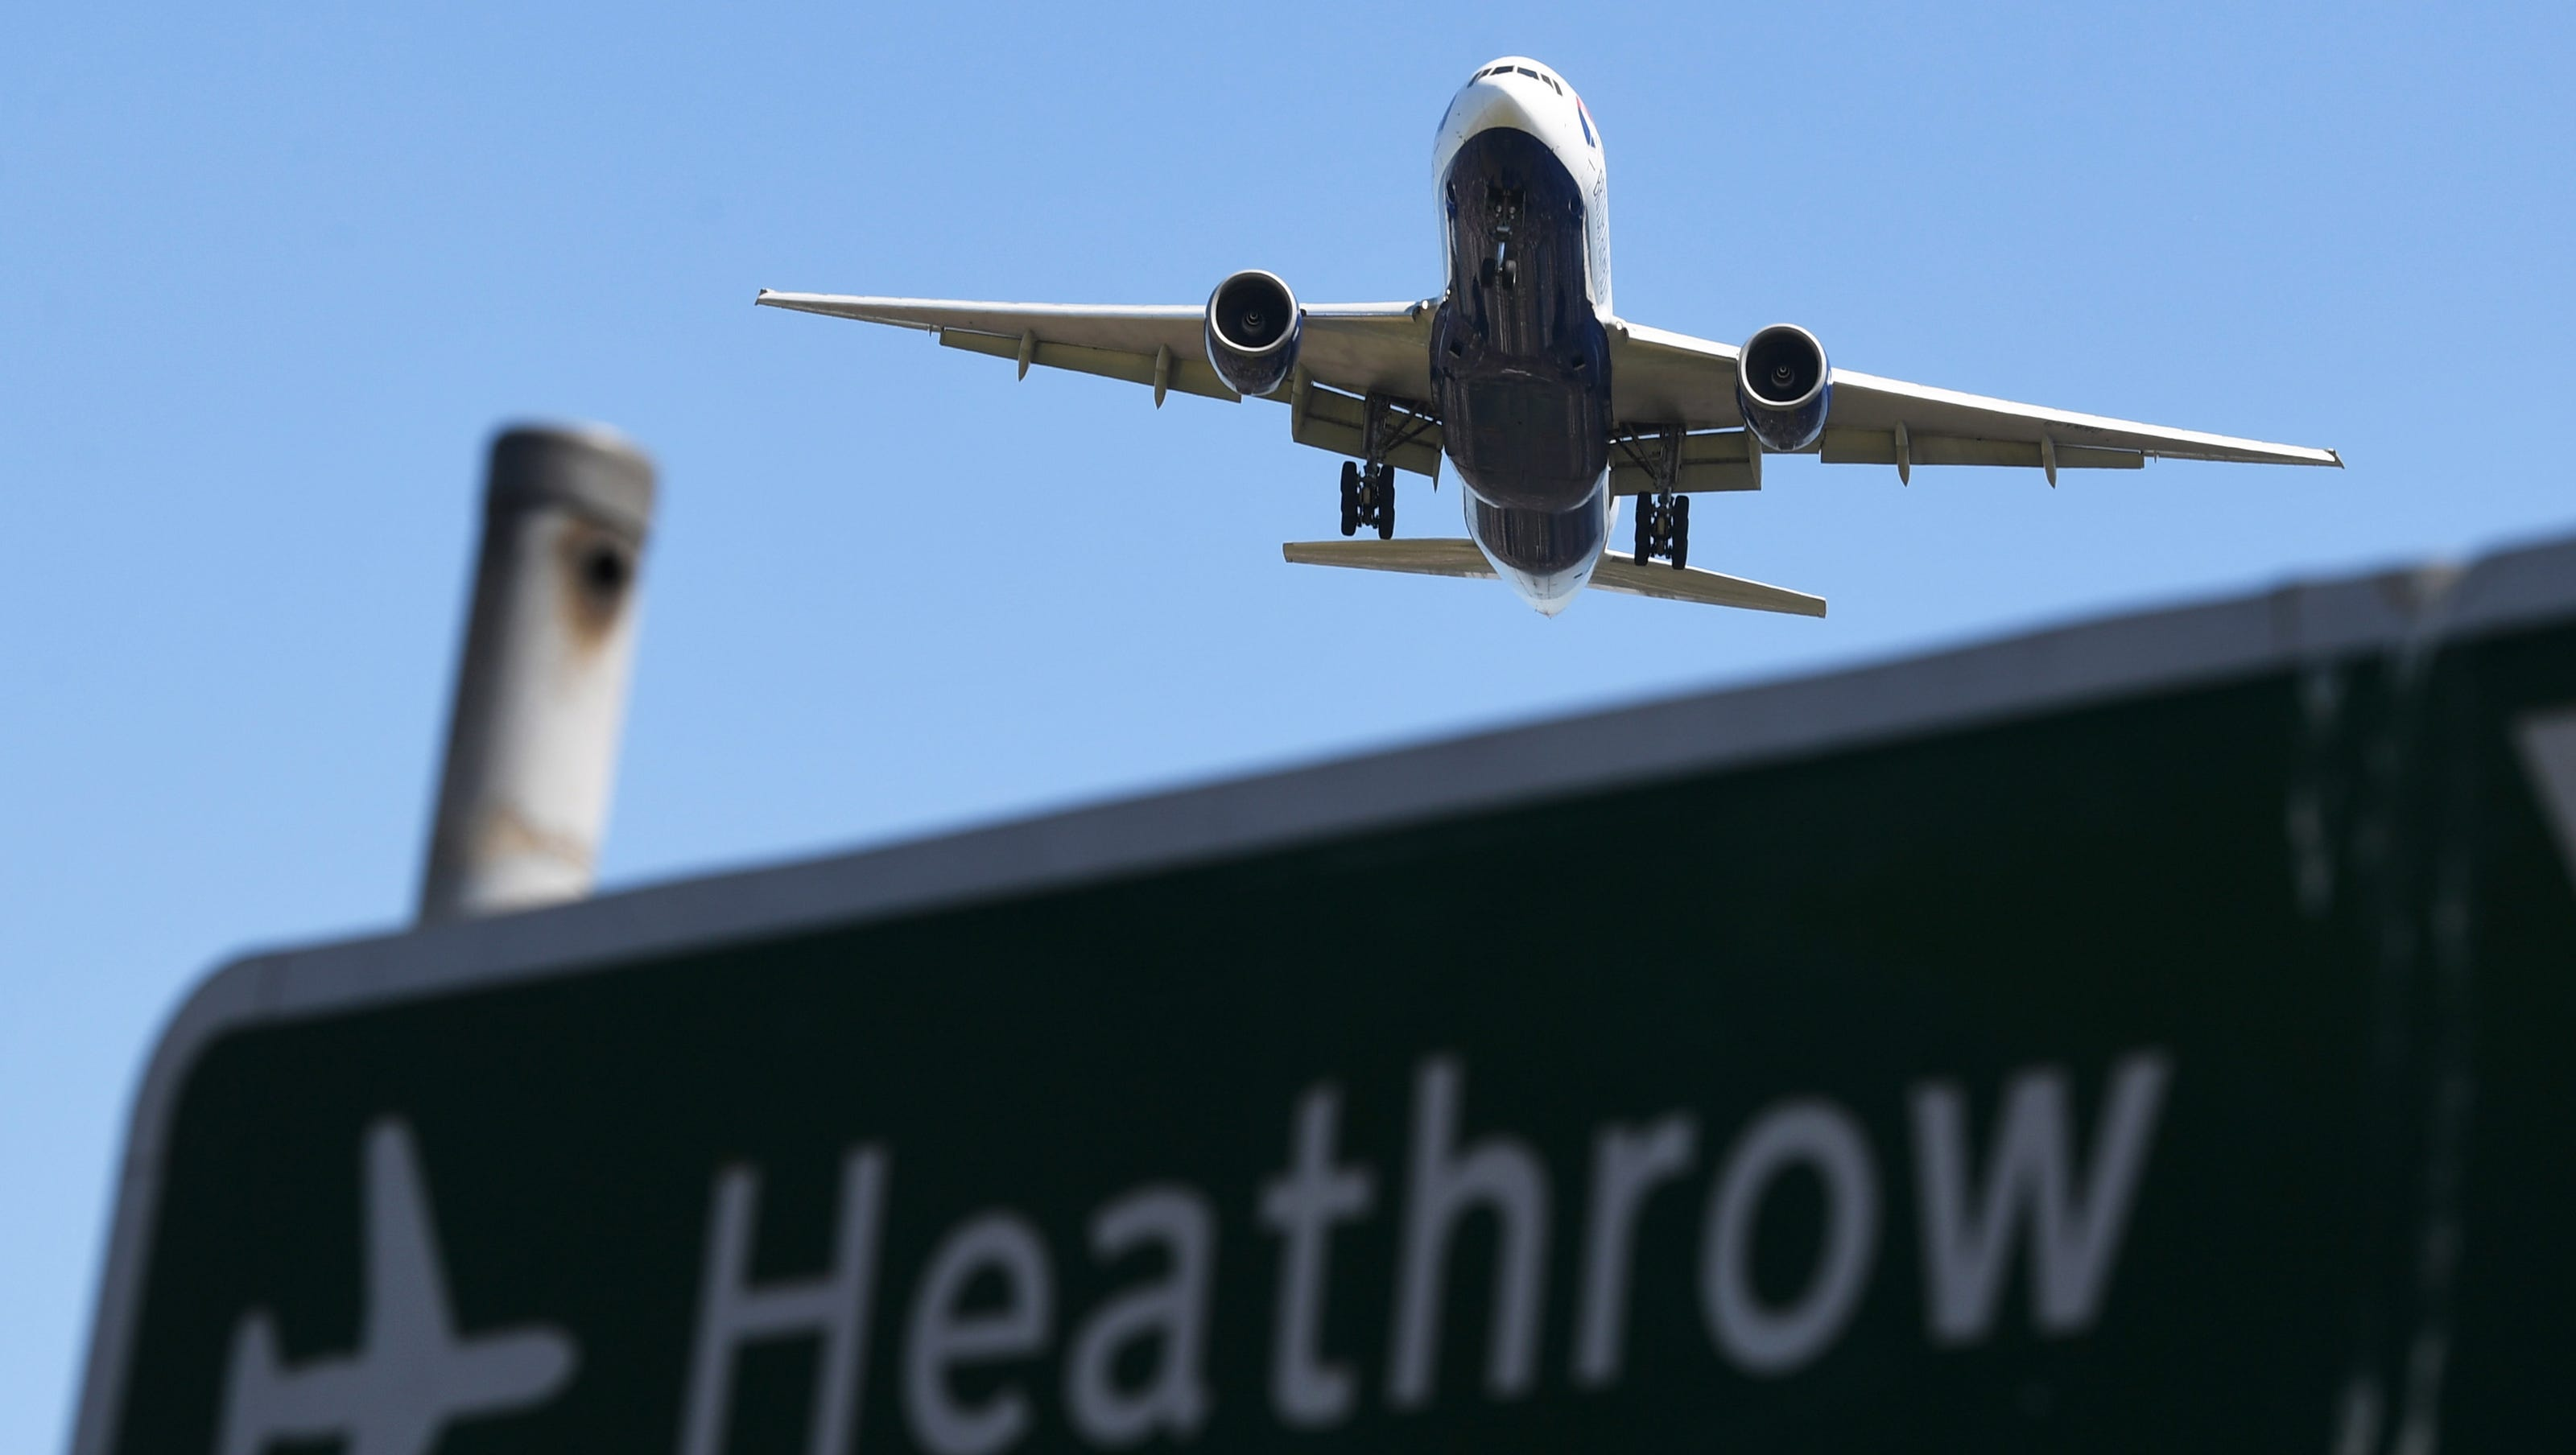 Uk Basketball: Heathrow Airport Briefly Halts Departures After Drone Sighting